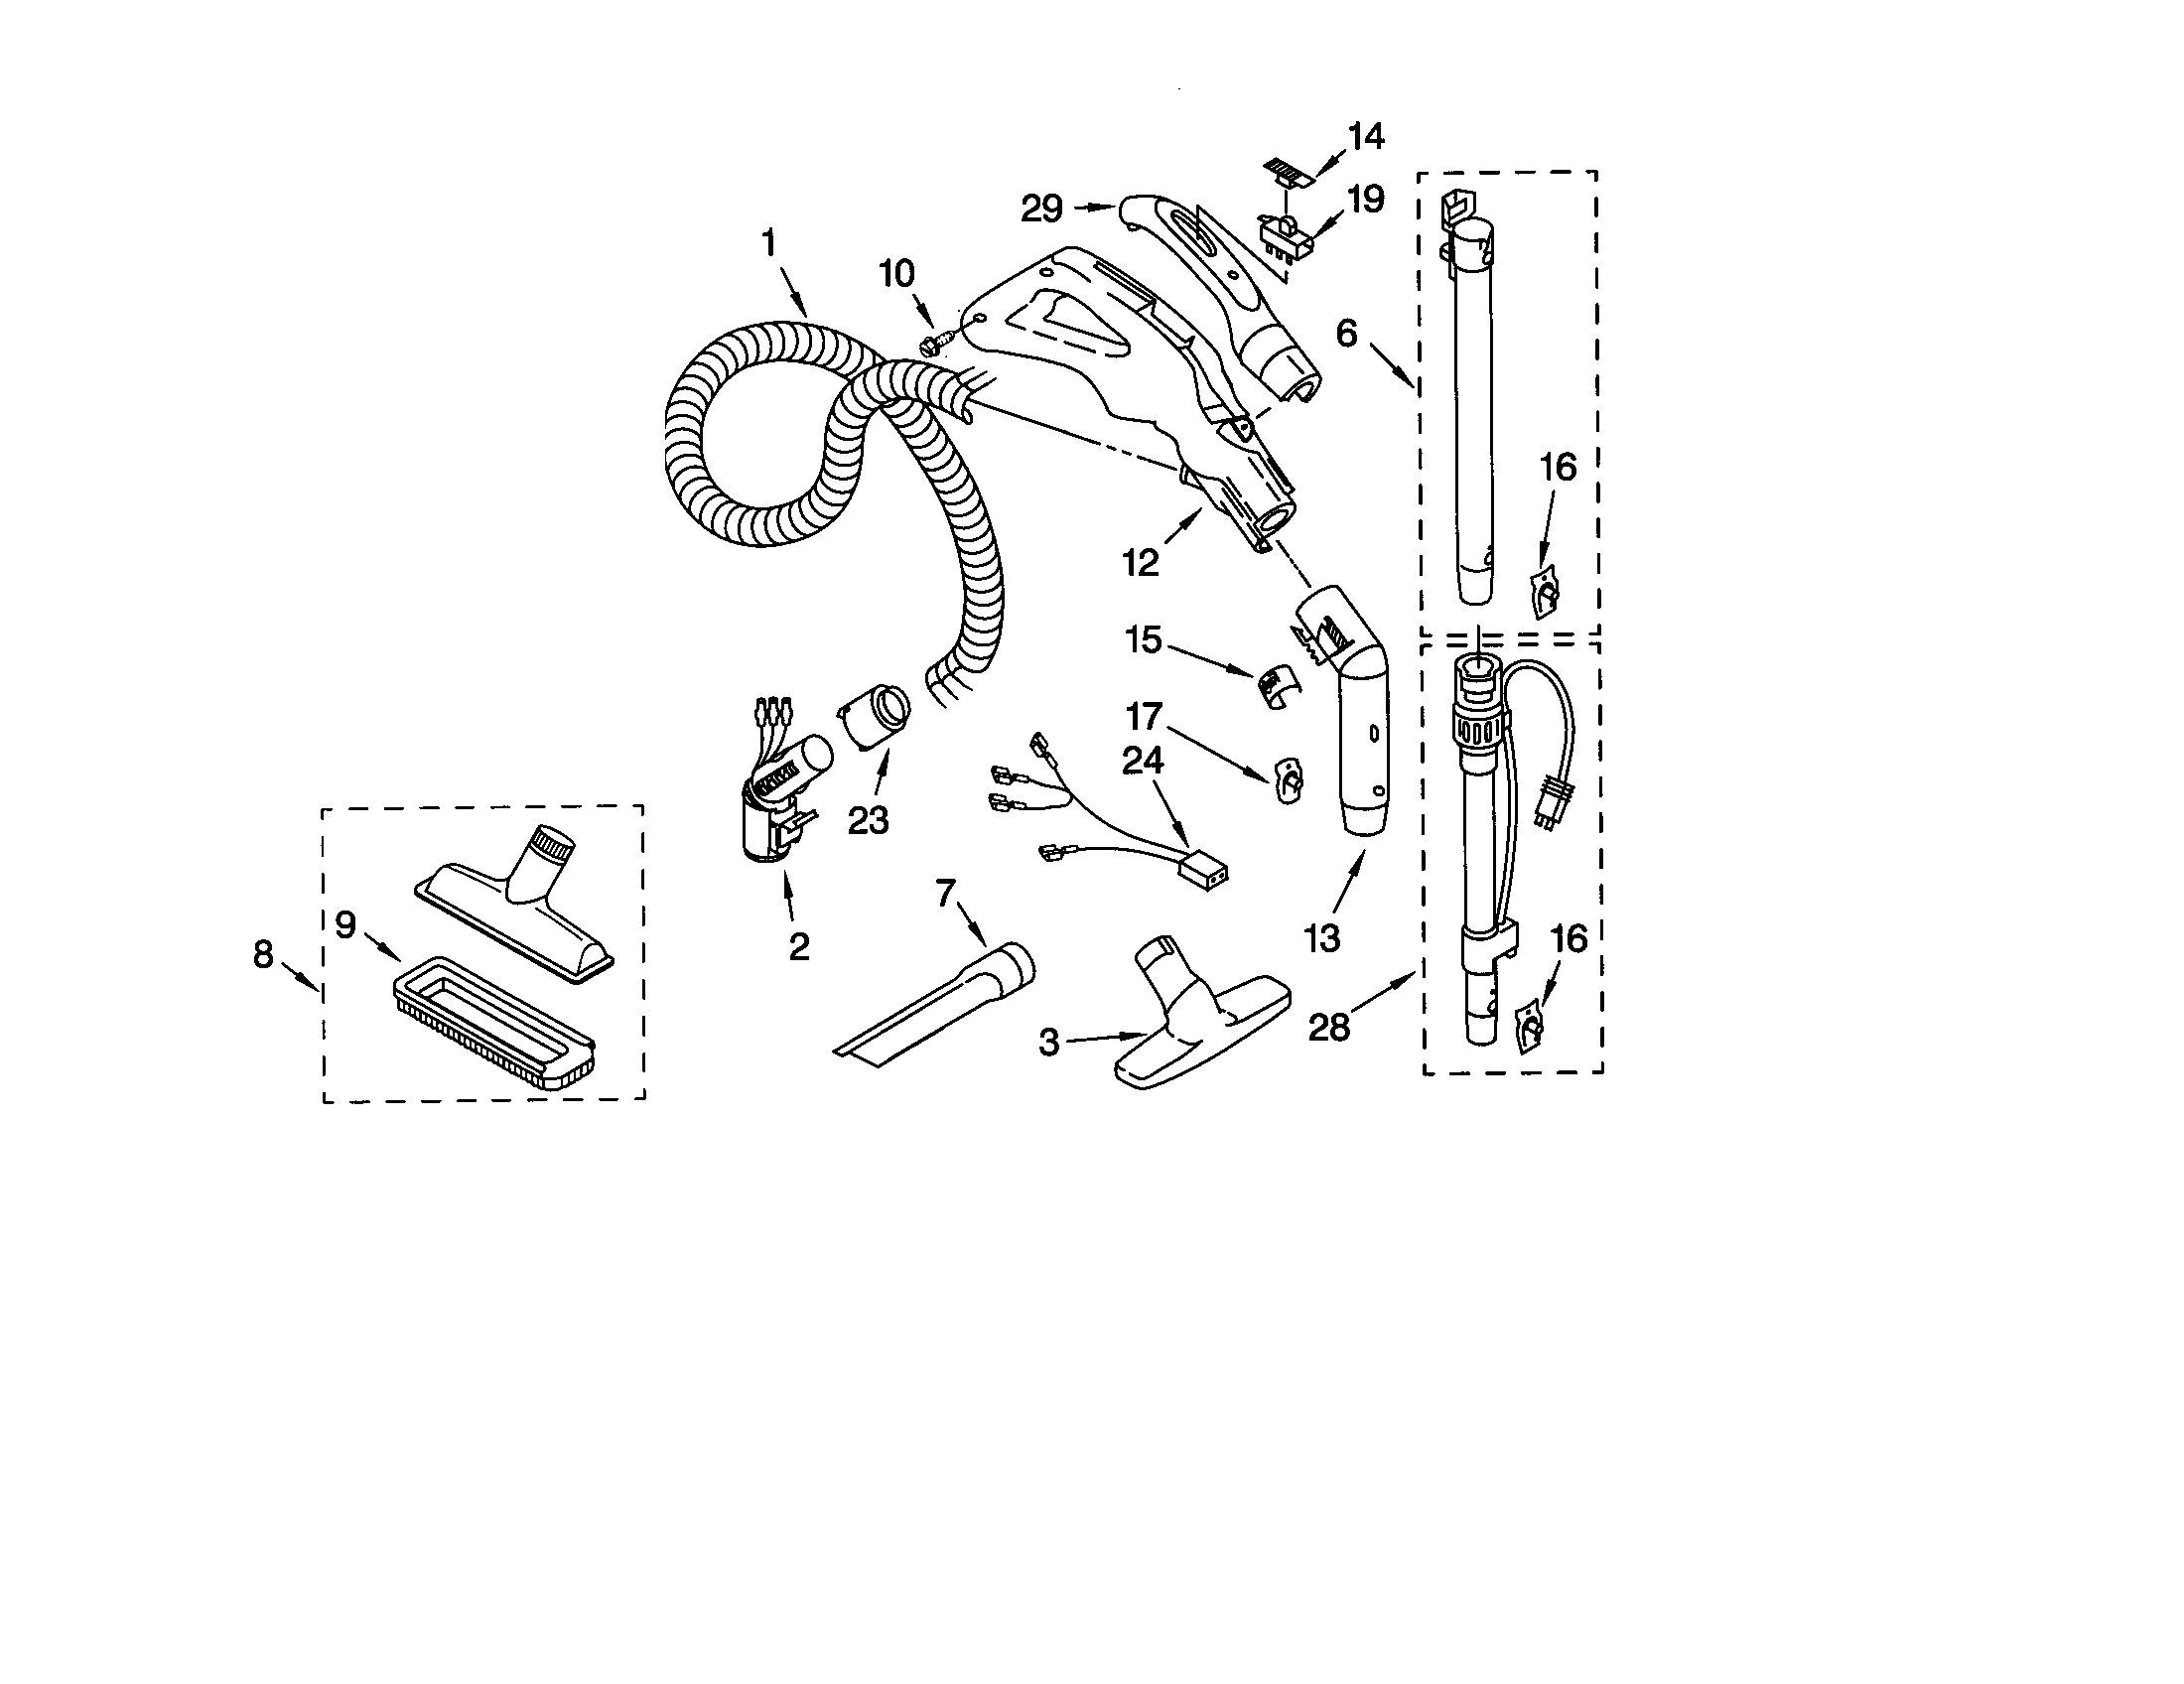 HOSE AND ATTACHMENT Diagram & Parts List for Model